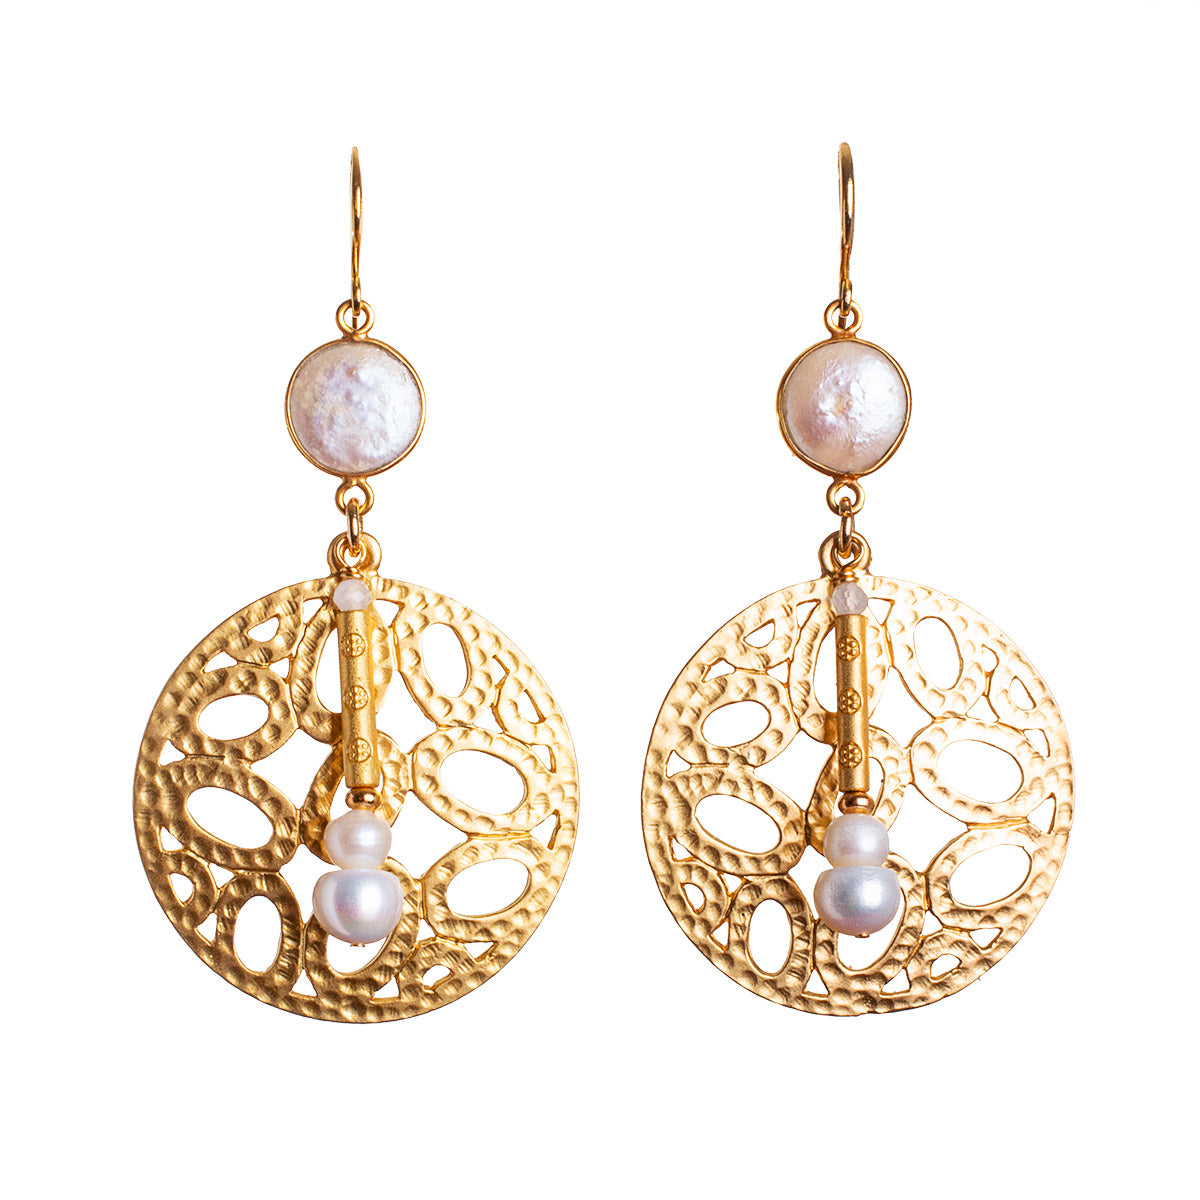 N°682 The Magic Pearl Hour Statement Earrings